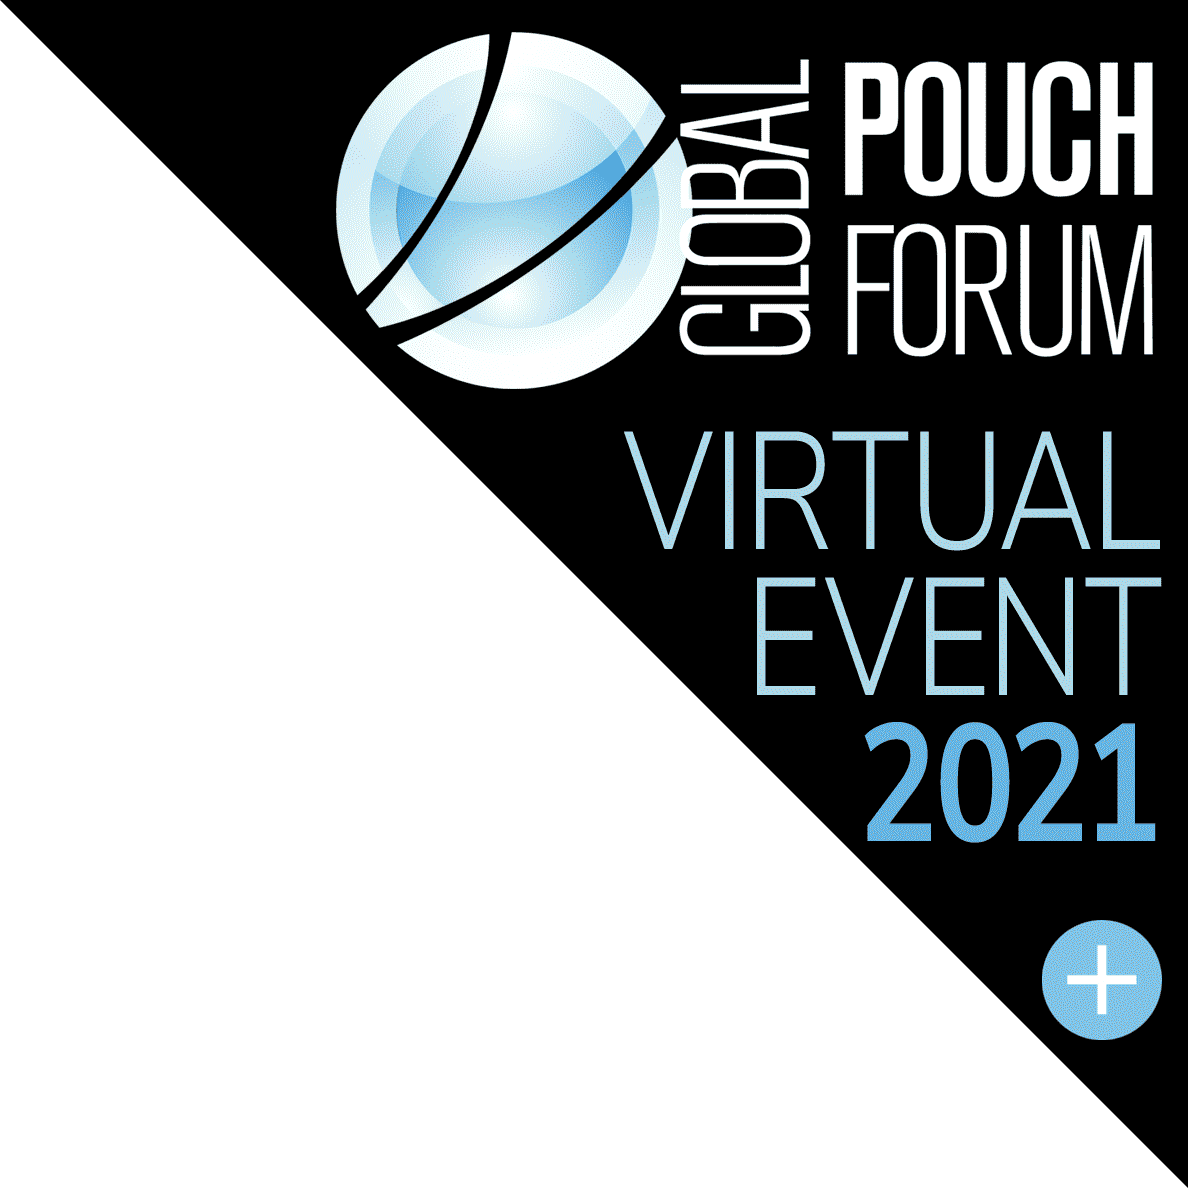 Global Pouch Forum Virtual Event 2021